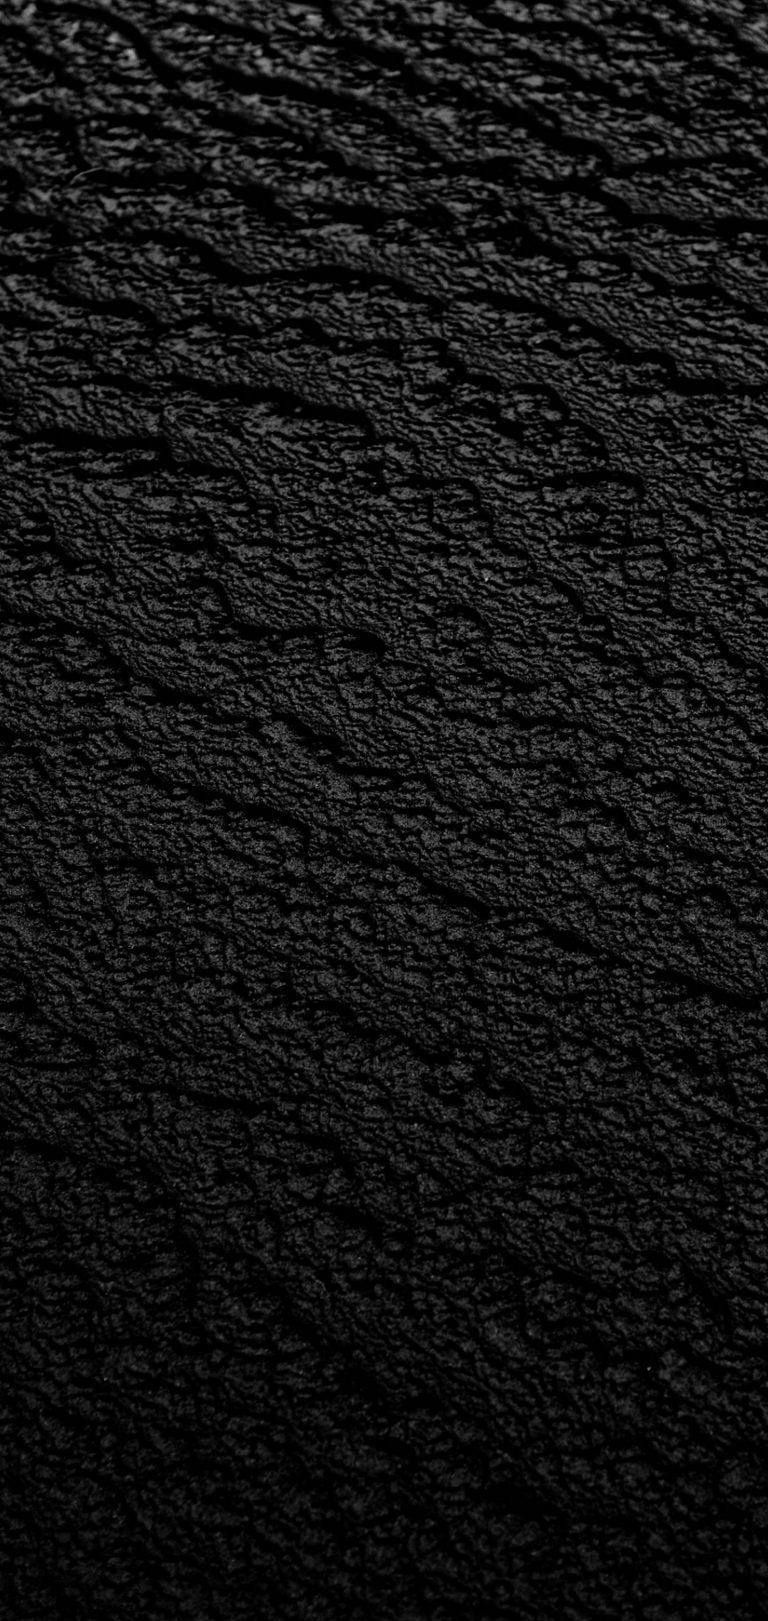 Black Surface Texture Wallpaper 1440x3040 768x1621